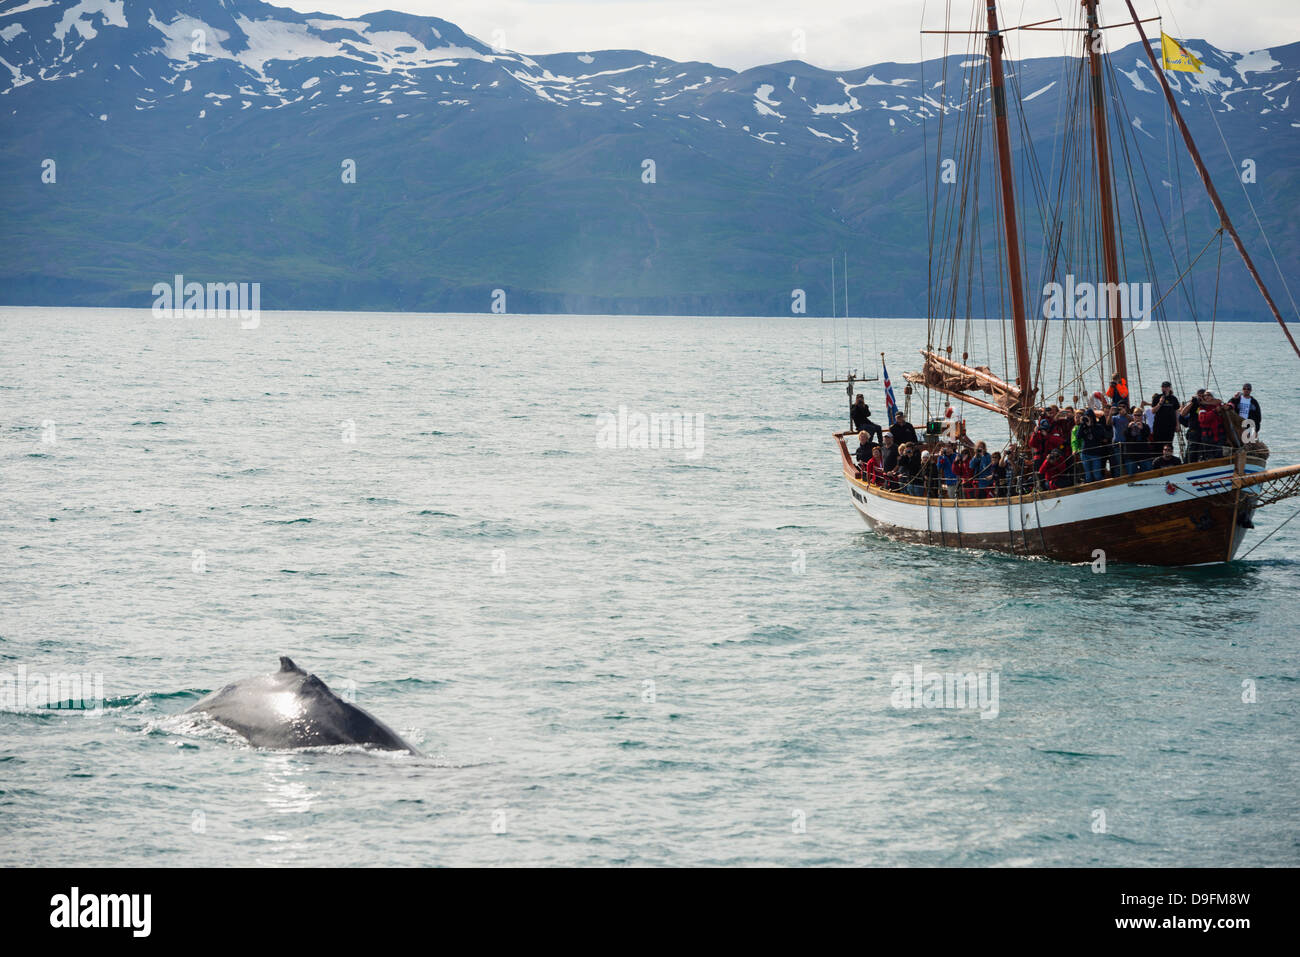 Whale watching tour, Husavik, Northern Region, Iceland, Polar Regions - Stock Image